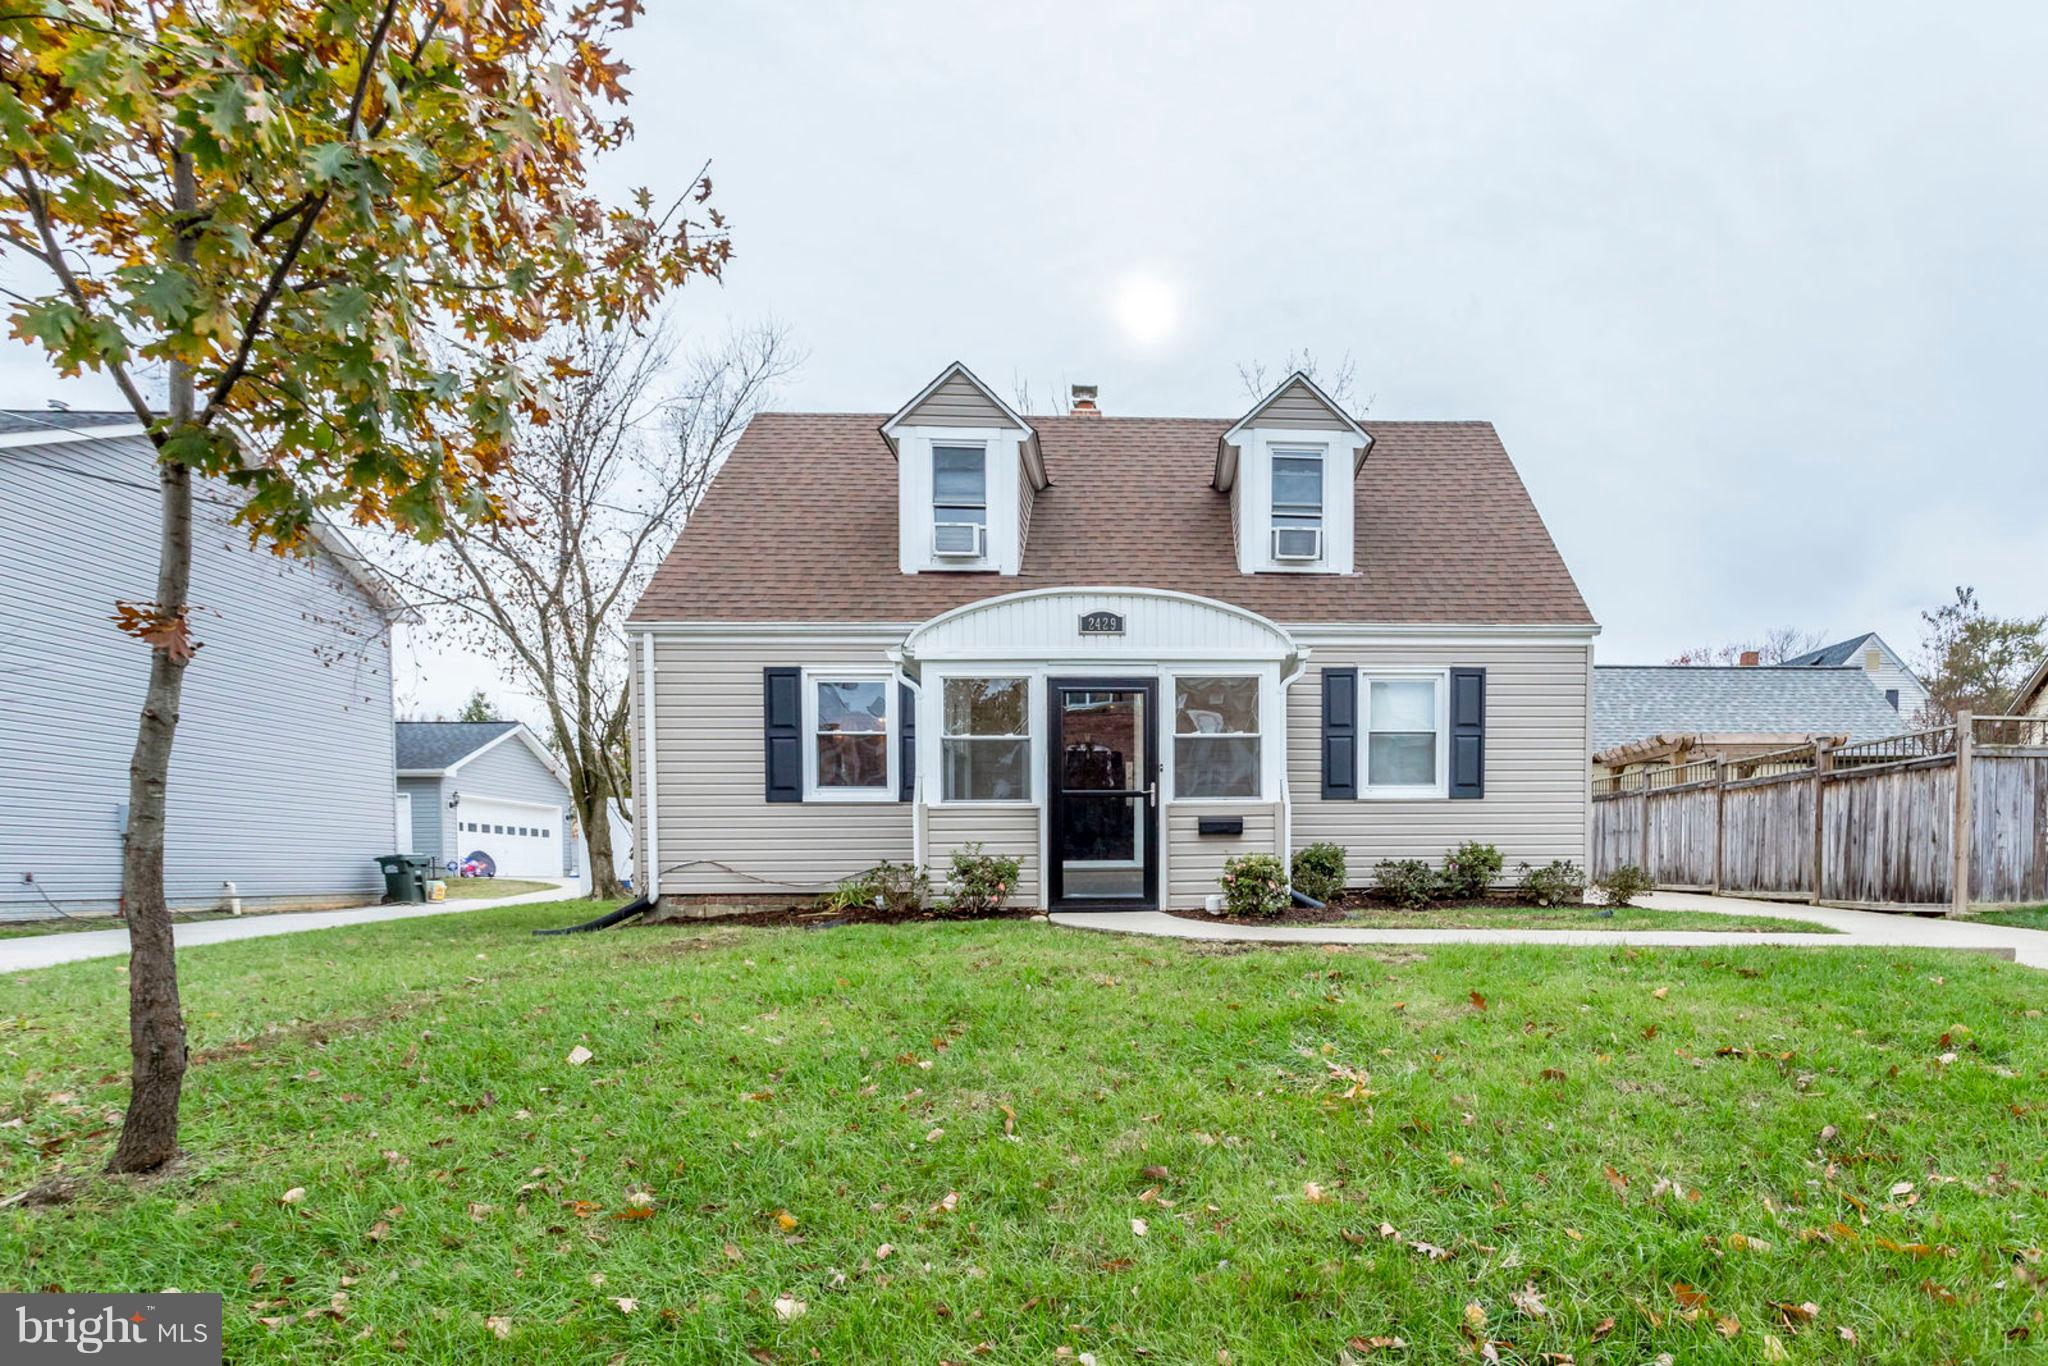 This magnificent cape cod is offered fully furnished with recently updated kitchen and bathrooms. A short walk to Huntington Metro Station and local shopping center, large driveway and quick, easy access to major roadways make this a commuters dream! Pets considered on a case-by-case basis. Landlord will not consider vouchers. Detached garage is not included but house features a large storage/laundry room. Owner to have periodic access to the garage with reasonable notice to the tenant. *owner agent*